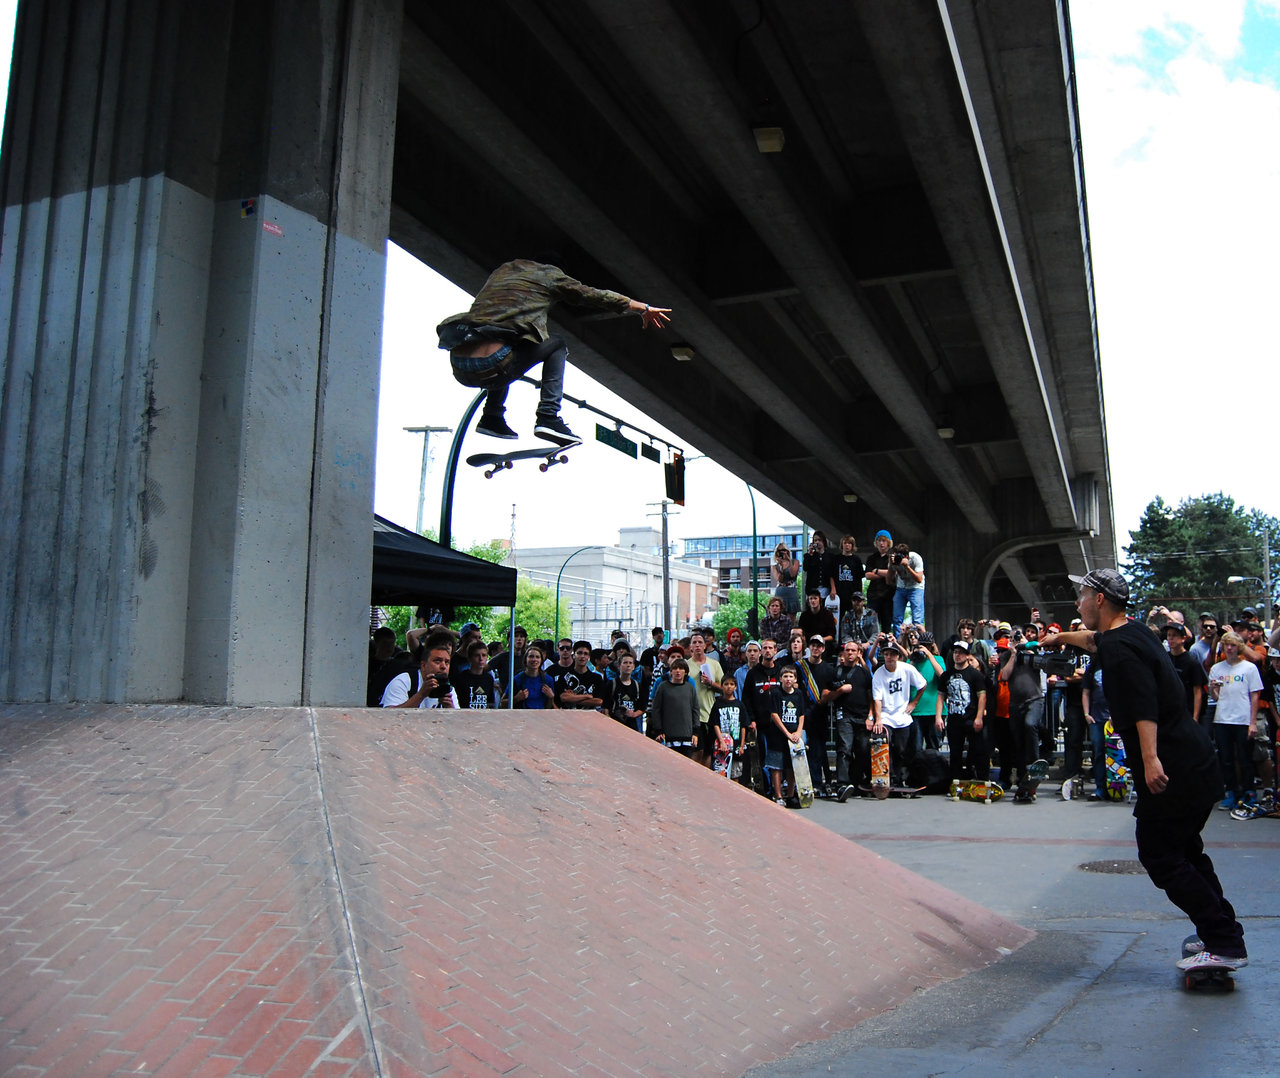 Andrew Reynolds. Big air @ Go Wild In The Streets. Vancouver 09